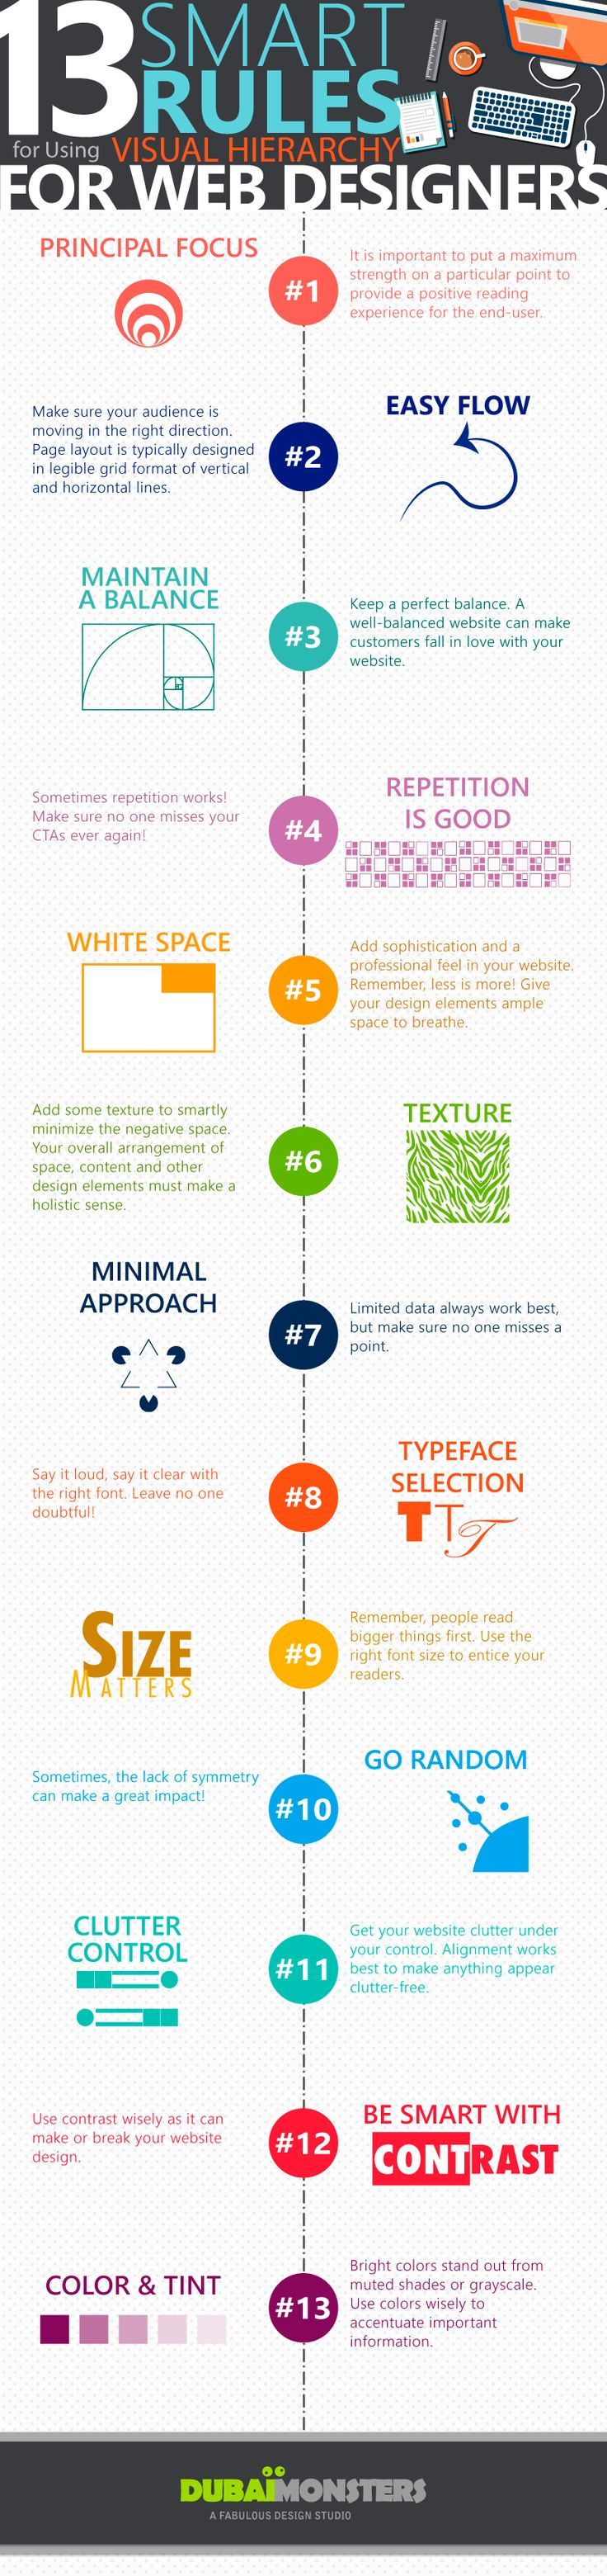 13 Smart Rules for Using Visual Hierarchy for Web Designers #Infographic #WebDesign #Web